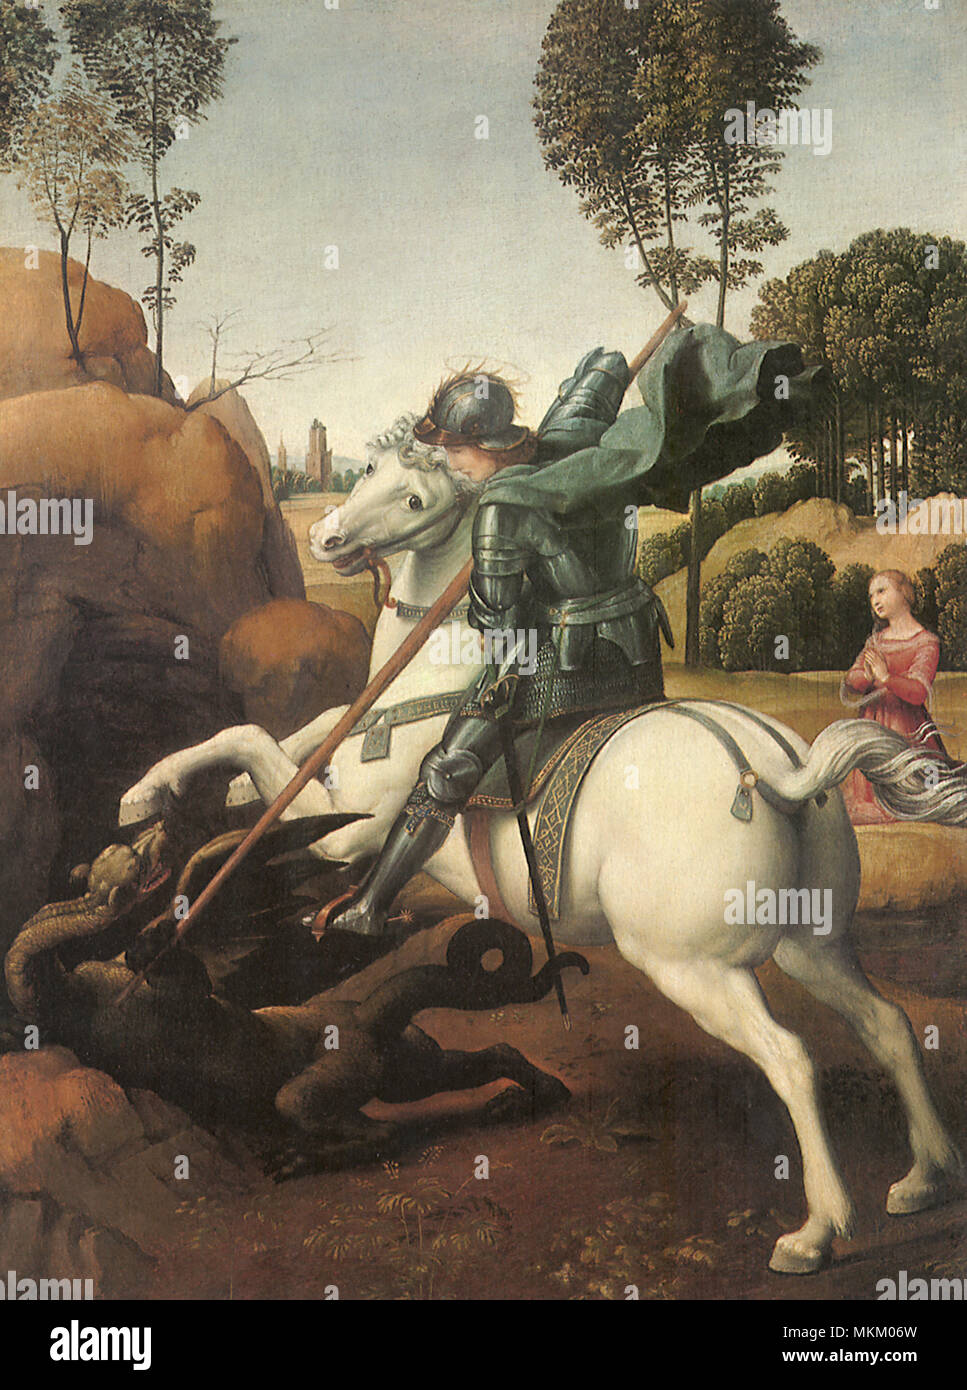 St. George and the Dragon 1505 - Stock Image